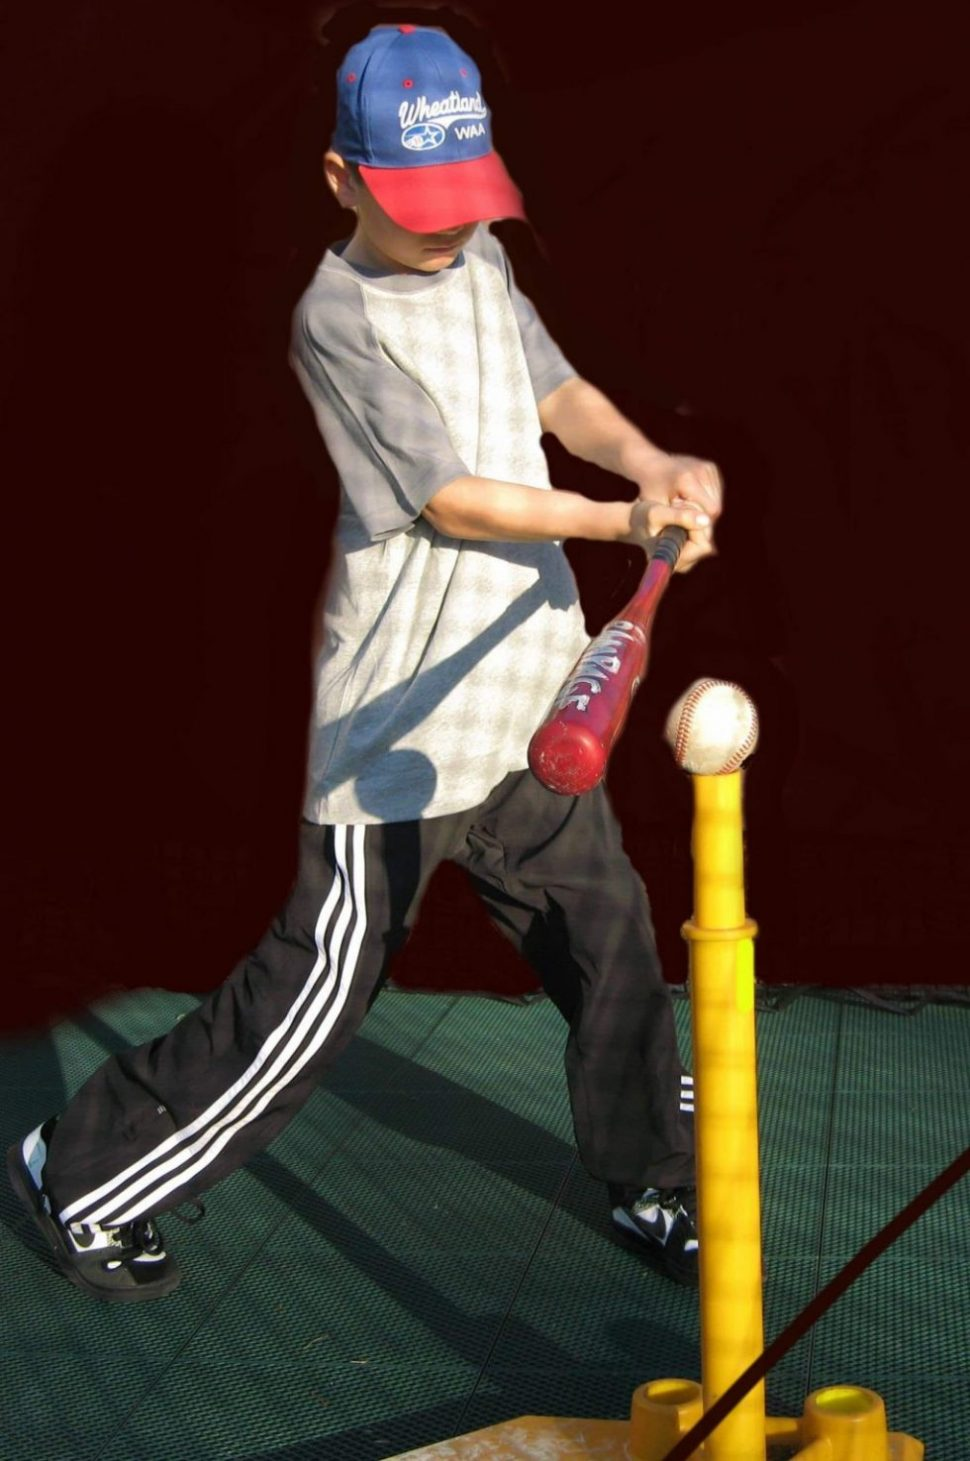 Baseball Hitting Mechanics for the Perfect Swing